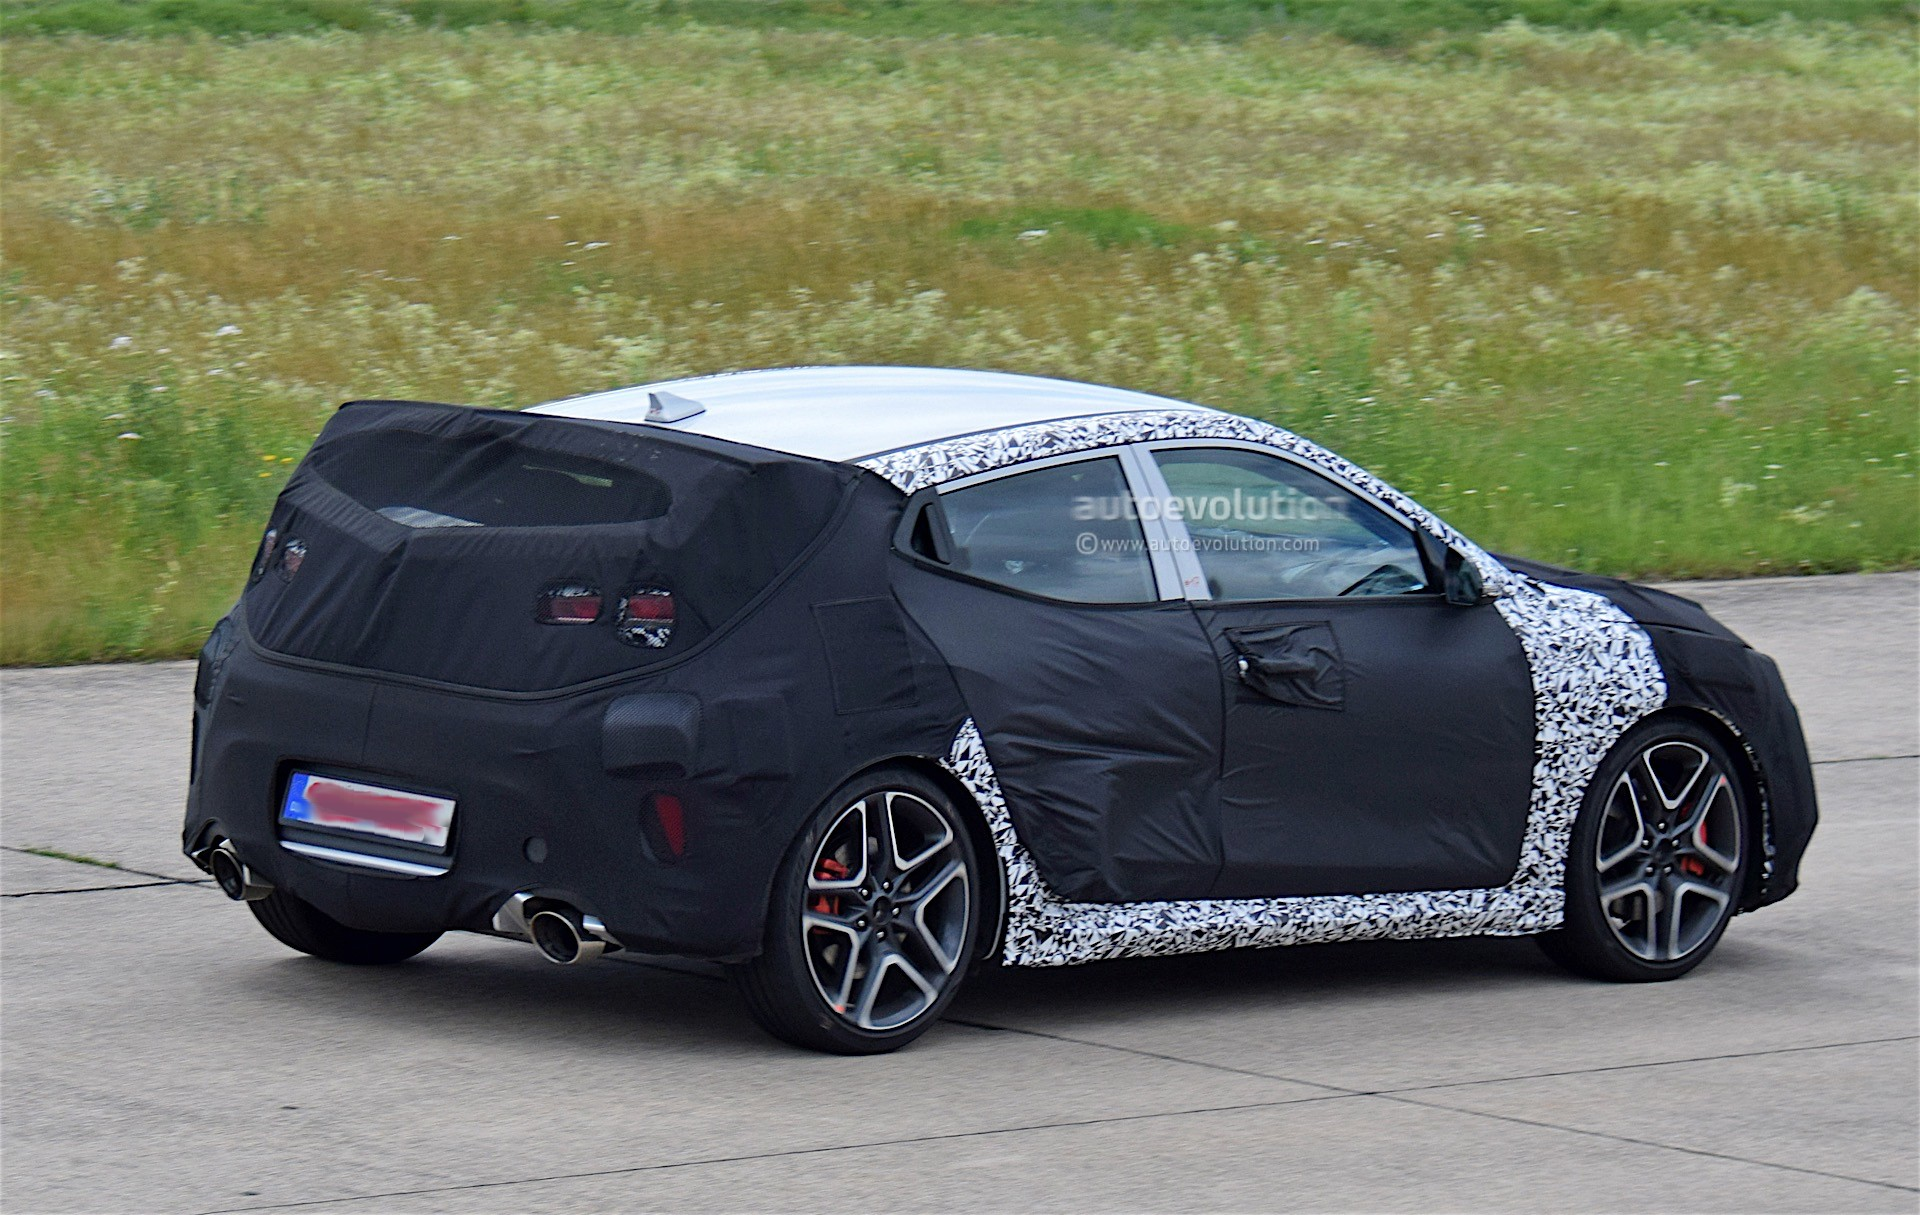 Hyundai Rm16 >> Hyundai Veloster N Spied For the First Time, Looks Down ...